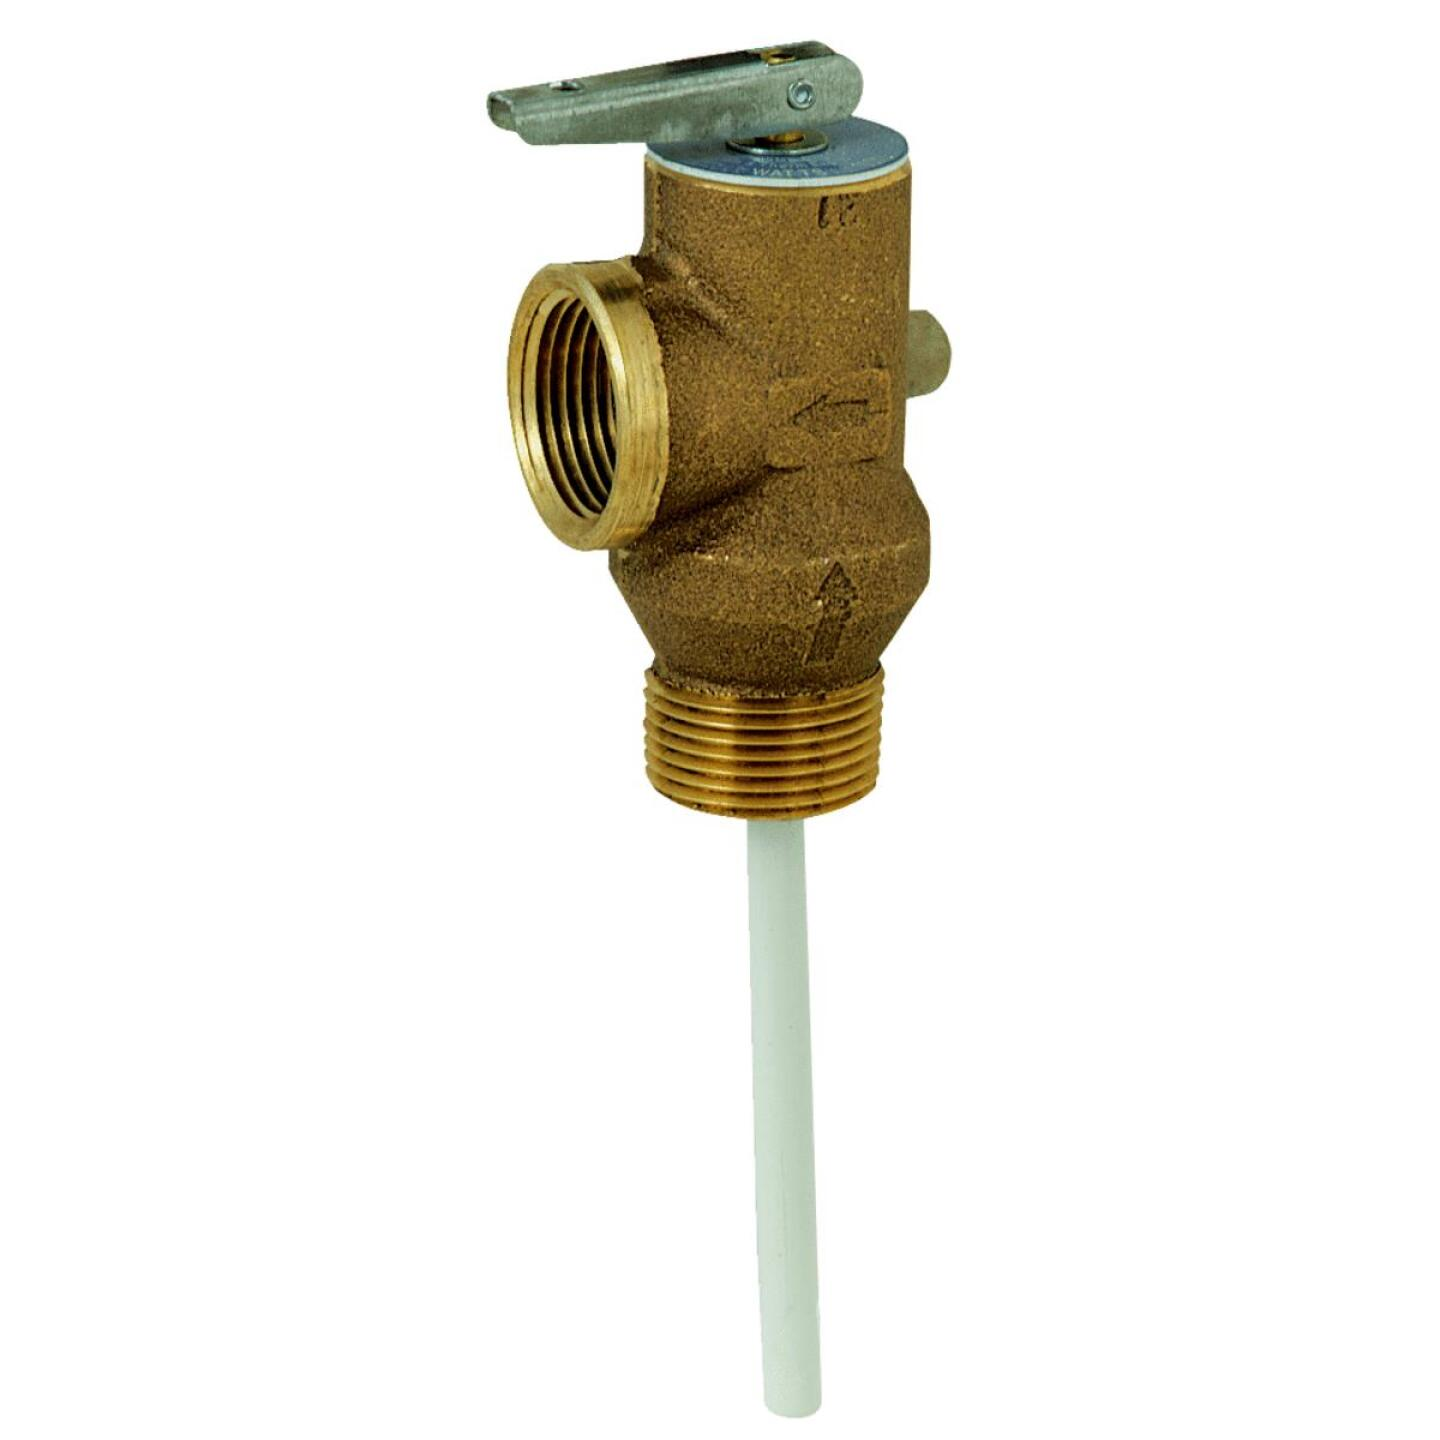 Reliance 3/4 In. MIPS Inlet X 3/4 In. FIPS Outlet Self-Closing Temperature & Pressure Relief Valve Image 1